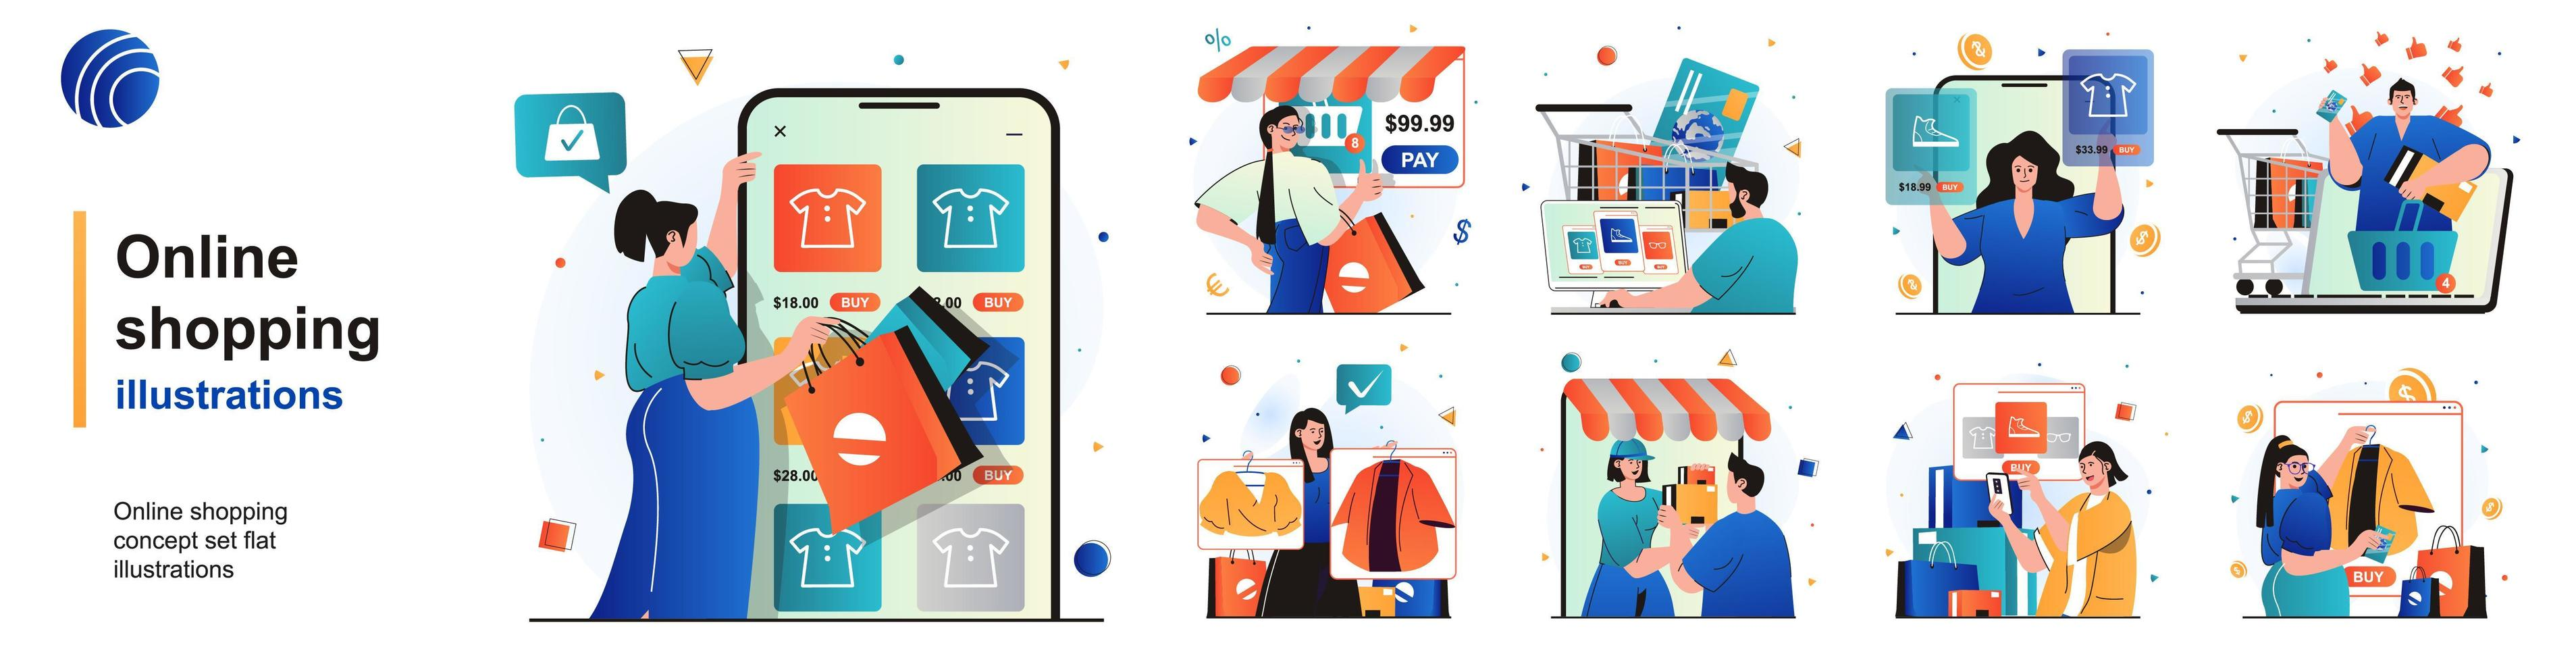 Online shopping isolated set. Customers choose and pay for purchases on site. People collection of scenes in flat design. Vector illustration for blogging, website, mobile app, promotional materials.